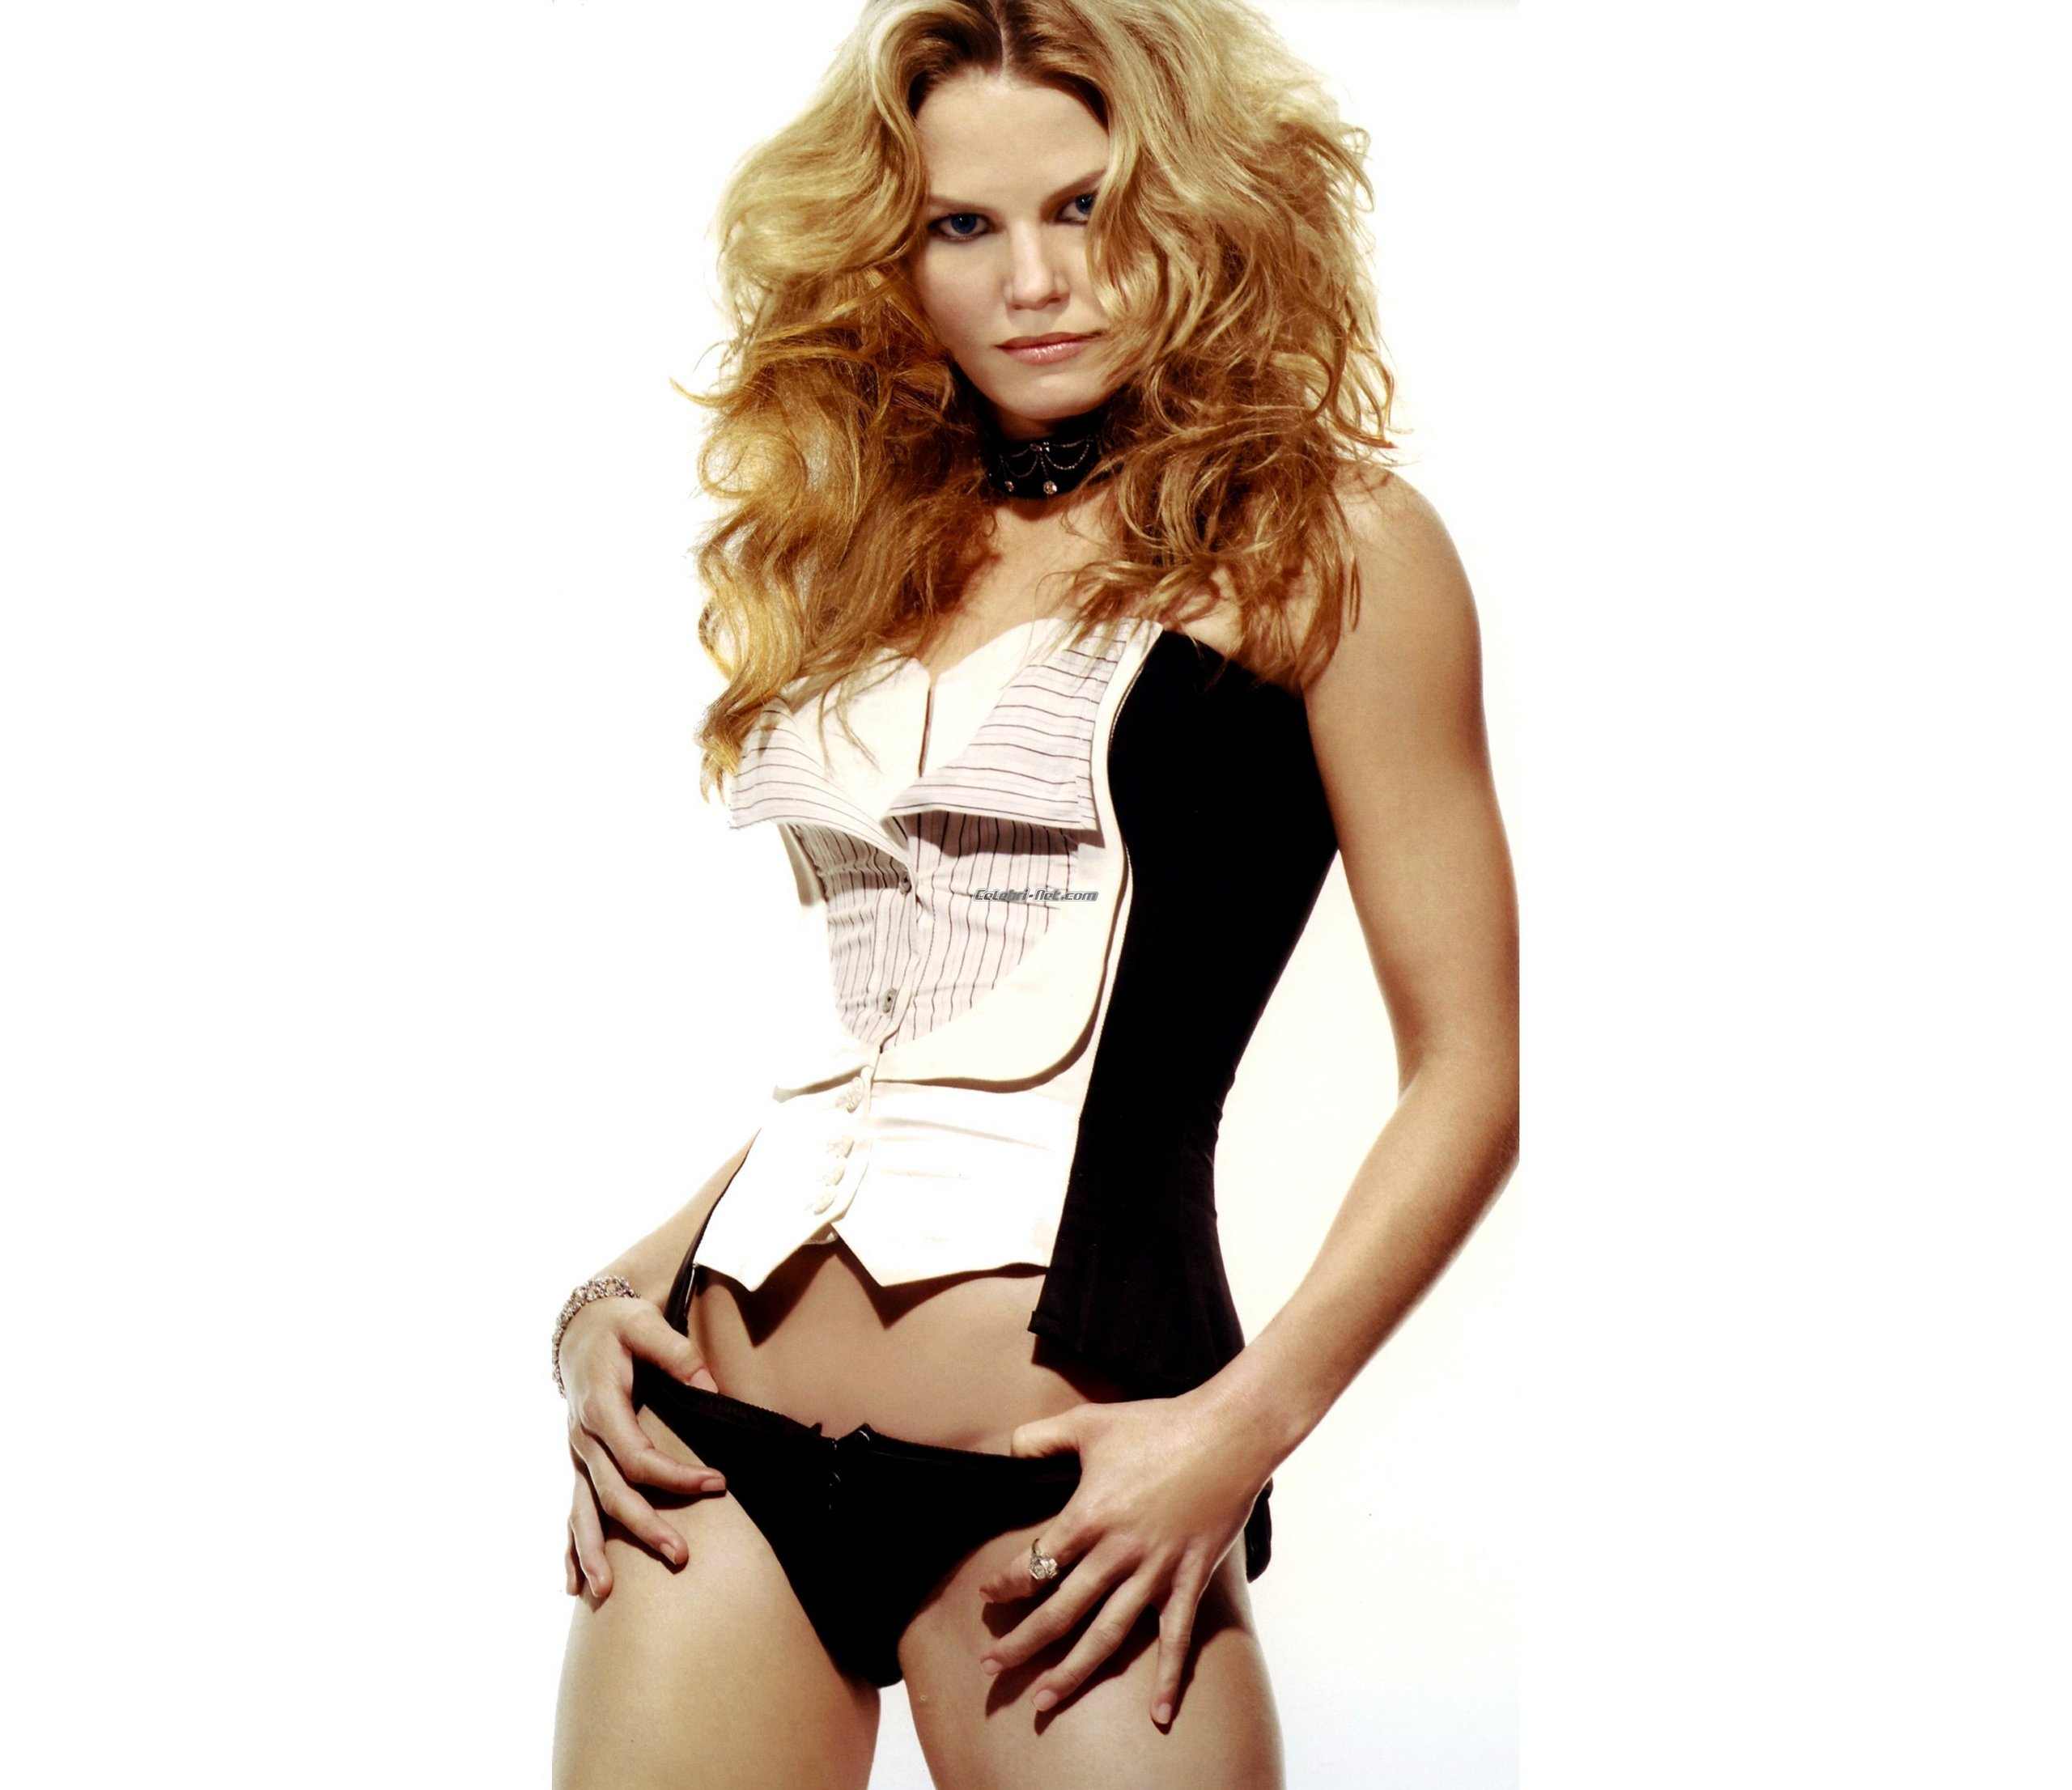 hot Jennifer morrison